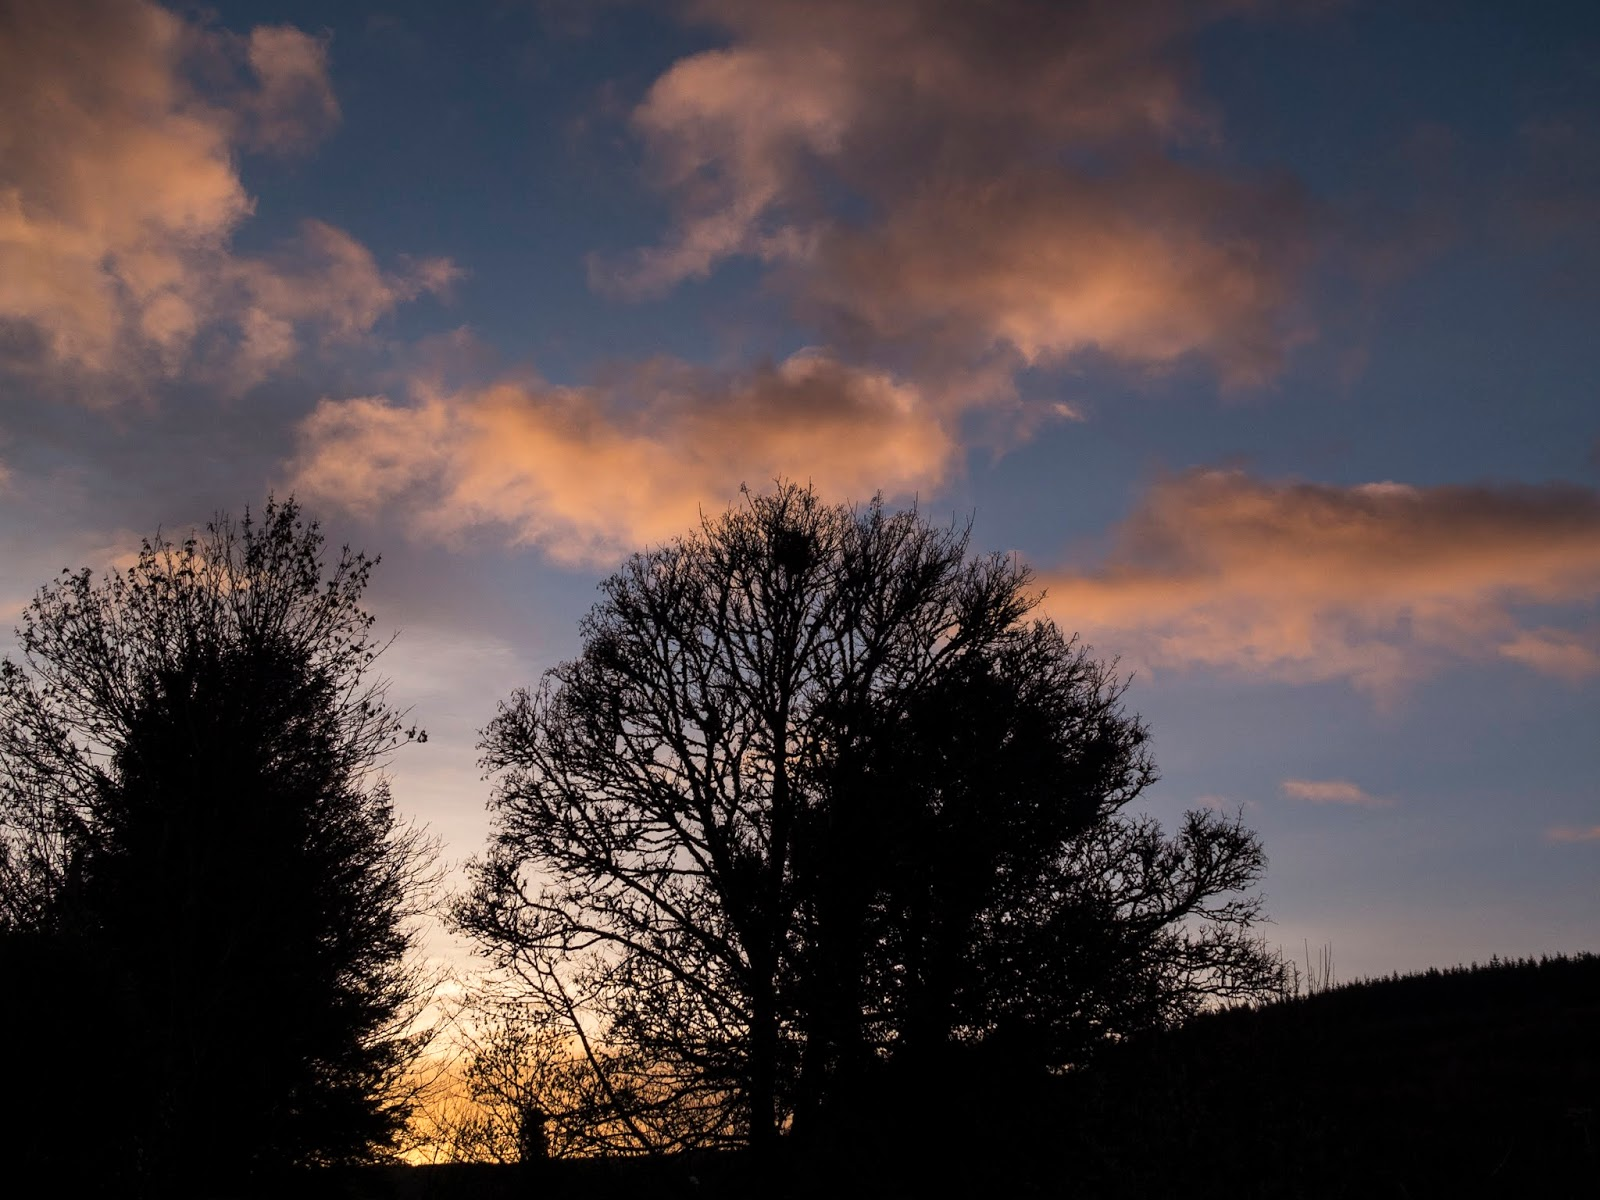 Silhouettes of mature trees at sunset with light pink clouds above.